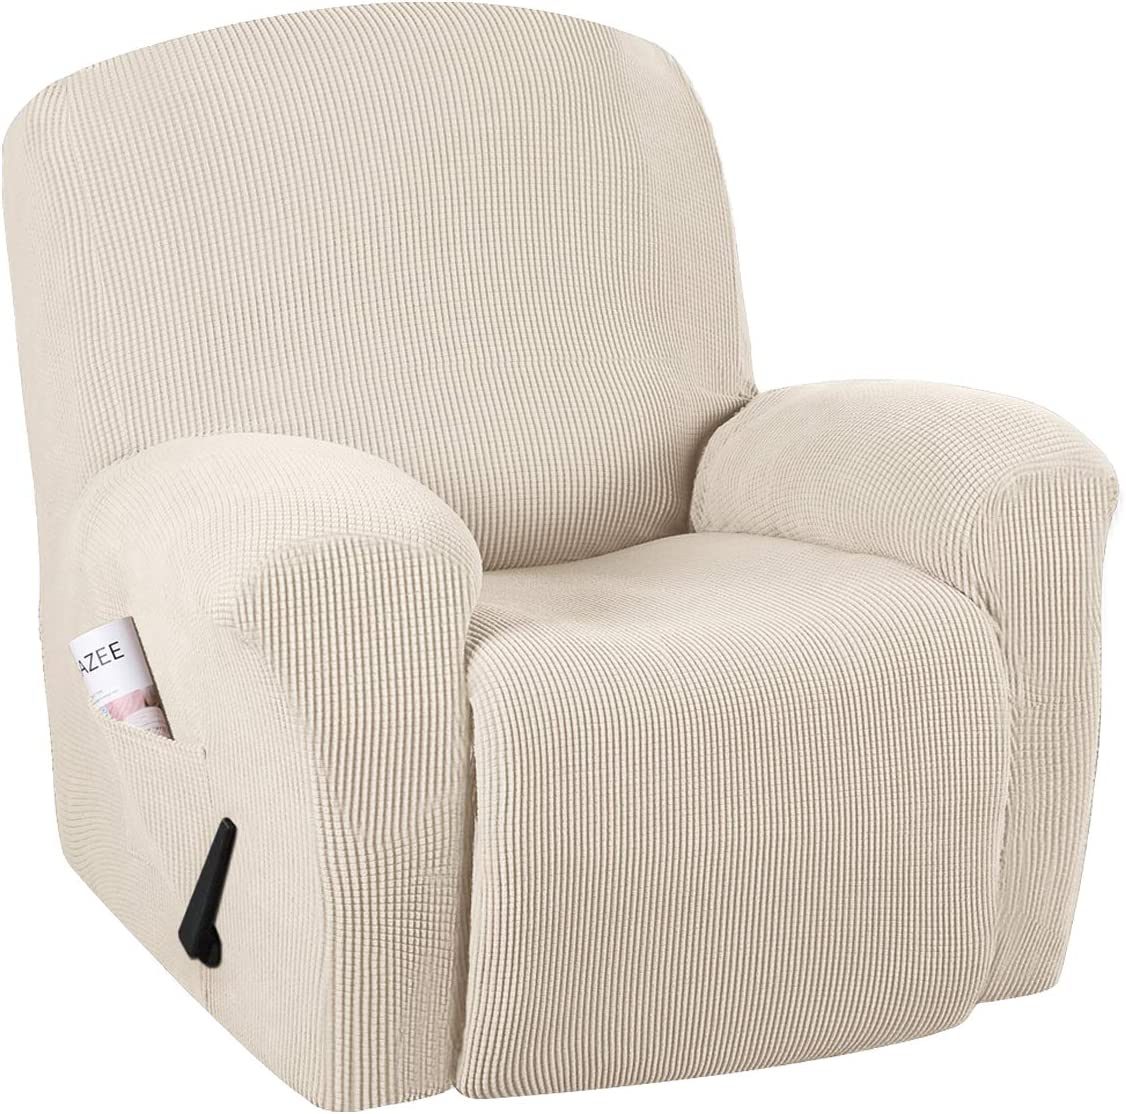 H.VERSAILTEX Super Stretch Couch Covers Recliner Covers Recliner Chair Covers Form Fitted Standard/Oversized Power Lift Reclining Slipcovers, Feature Soft Thick Jacquard, Beige, 1 Pack